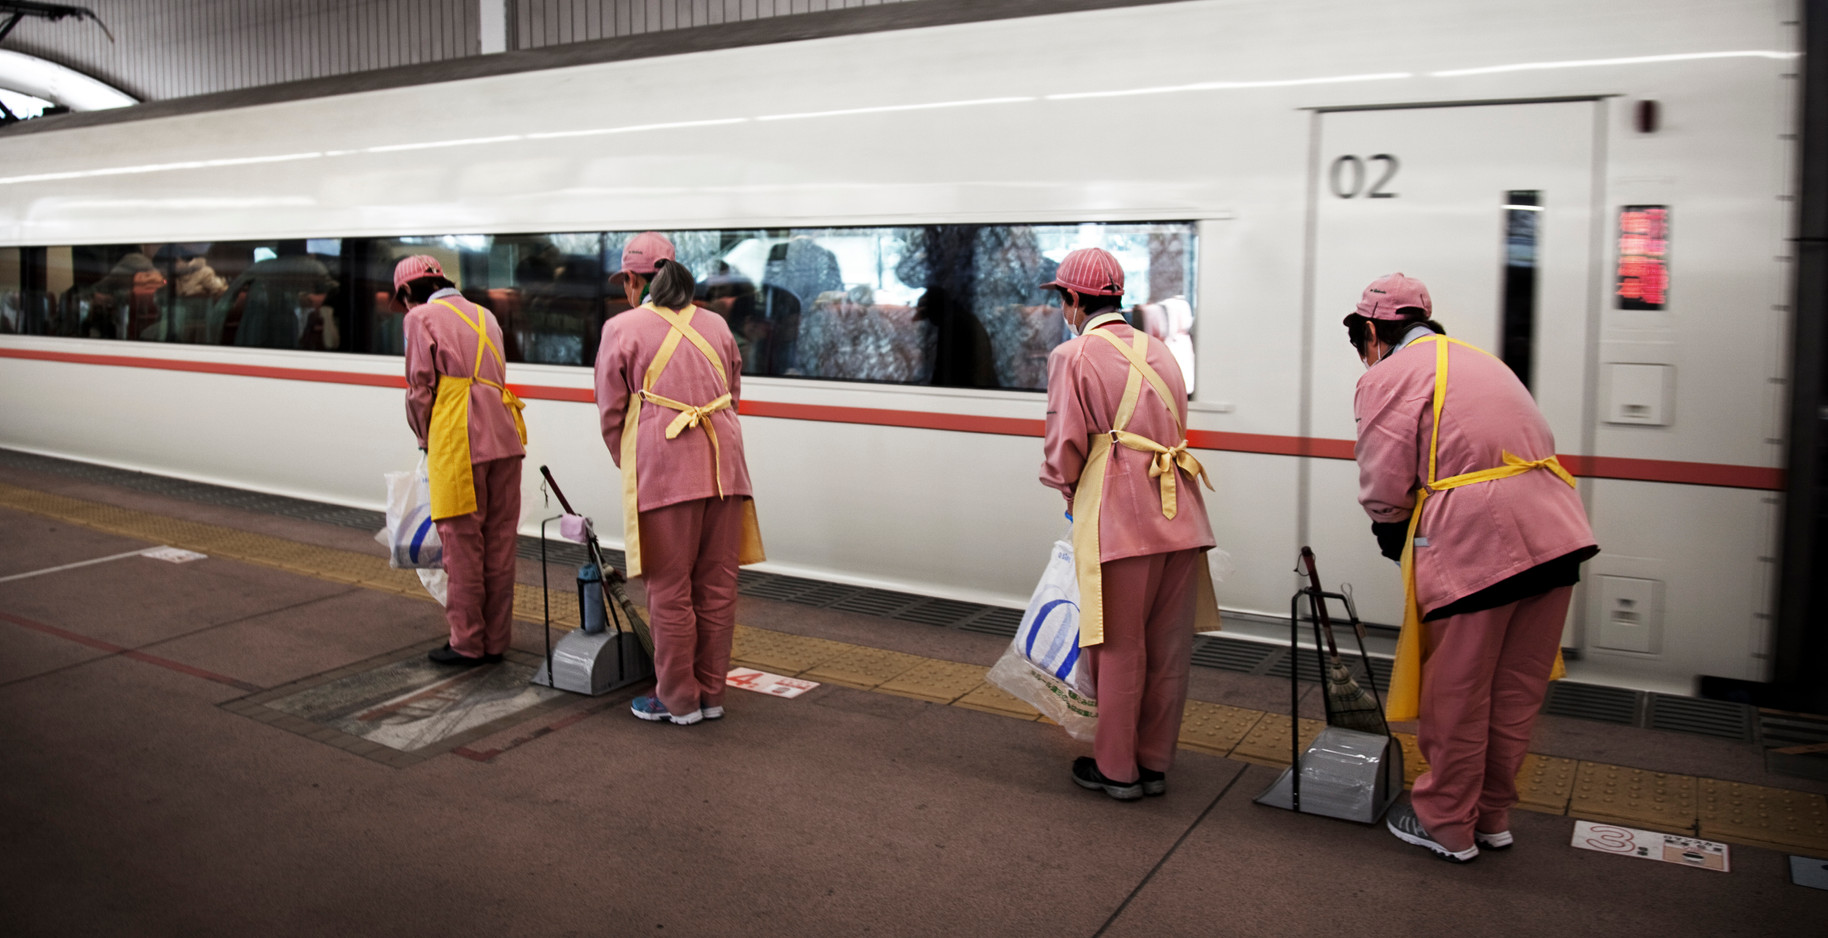 Cleaners Bow to Approaching Train